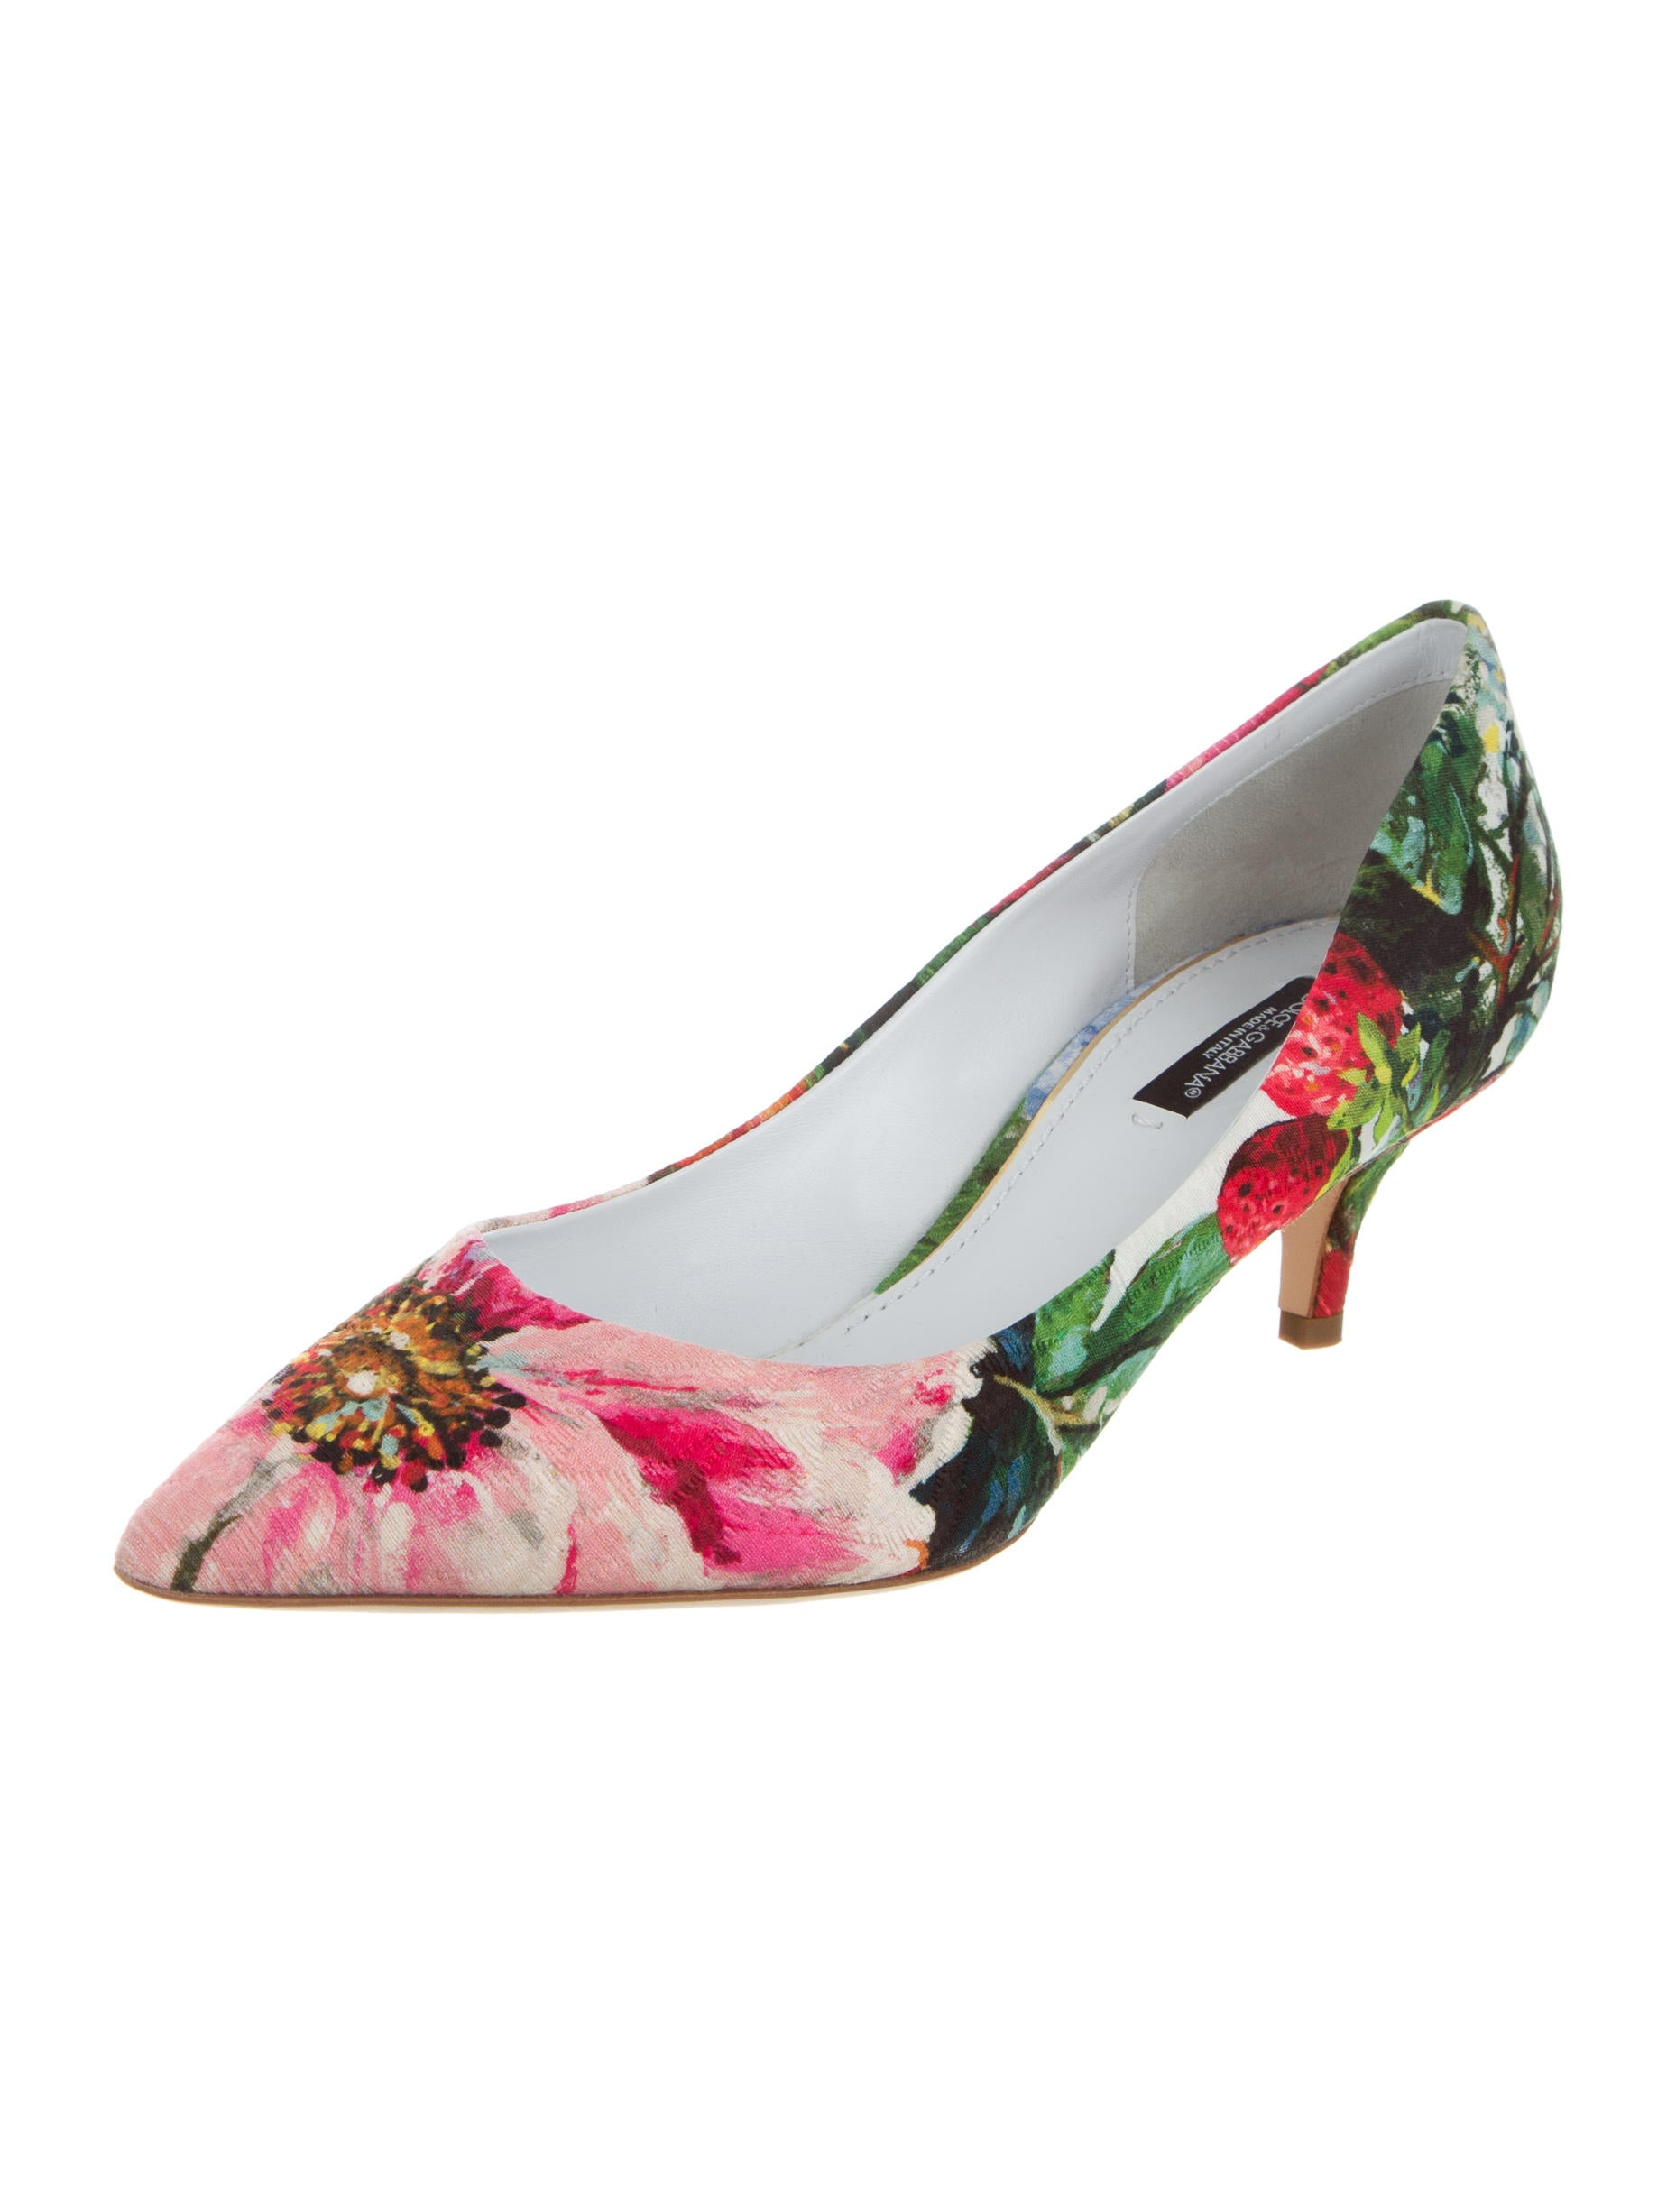 Dolce Amp Gabbana Floral Print Pointed Toe Pumps Shoes